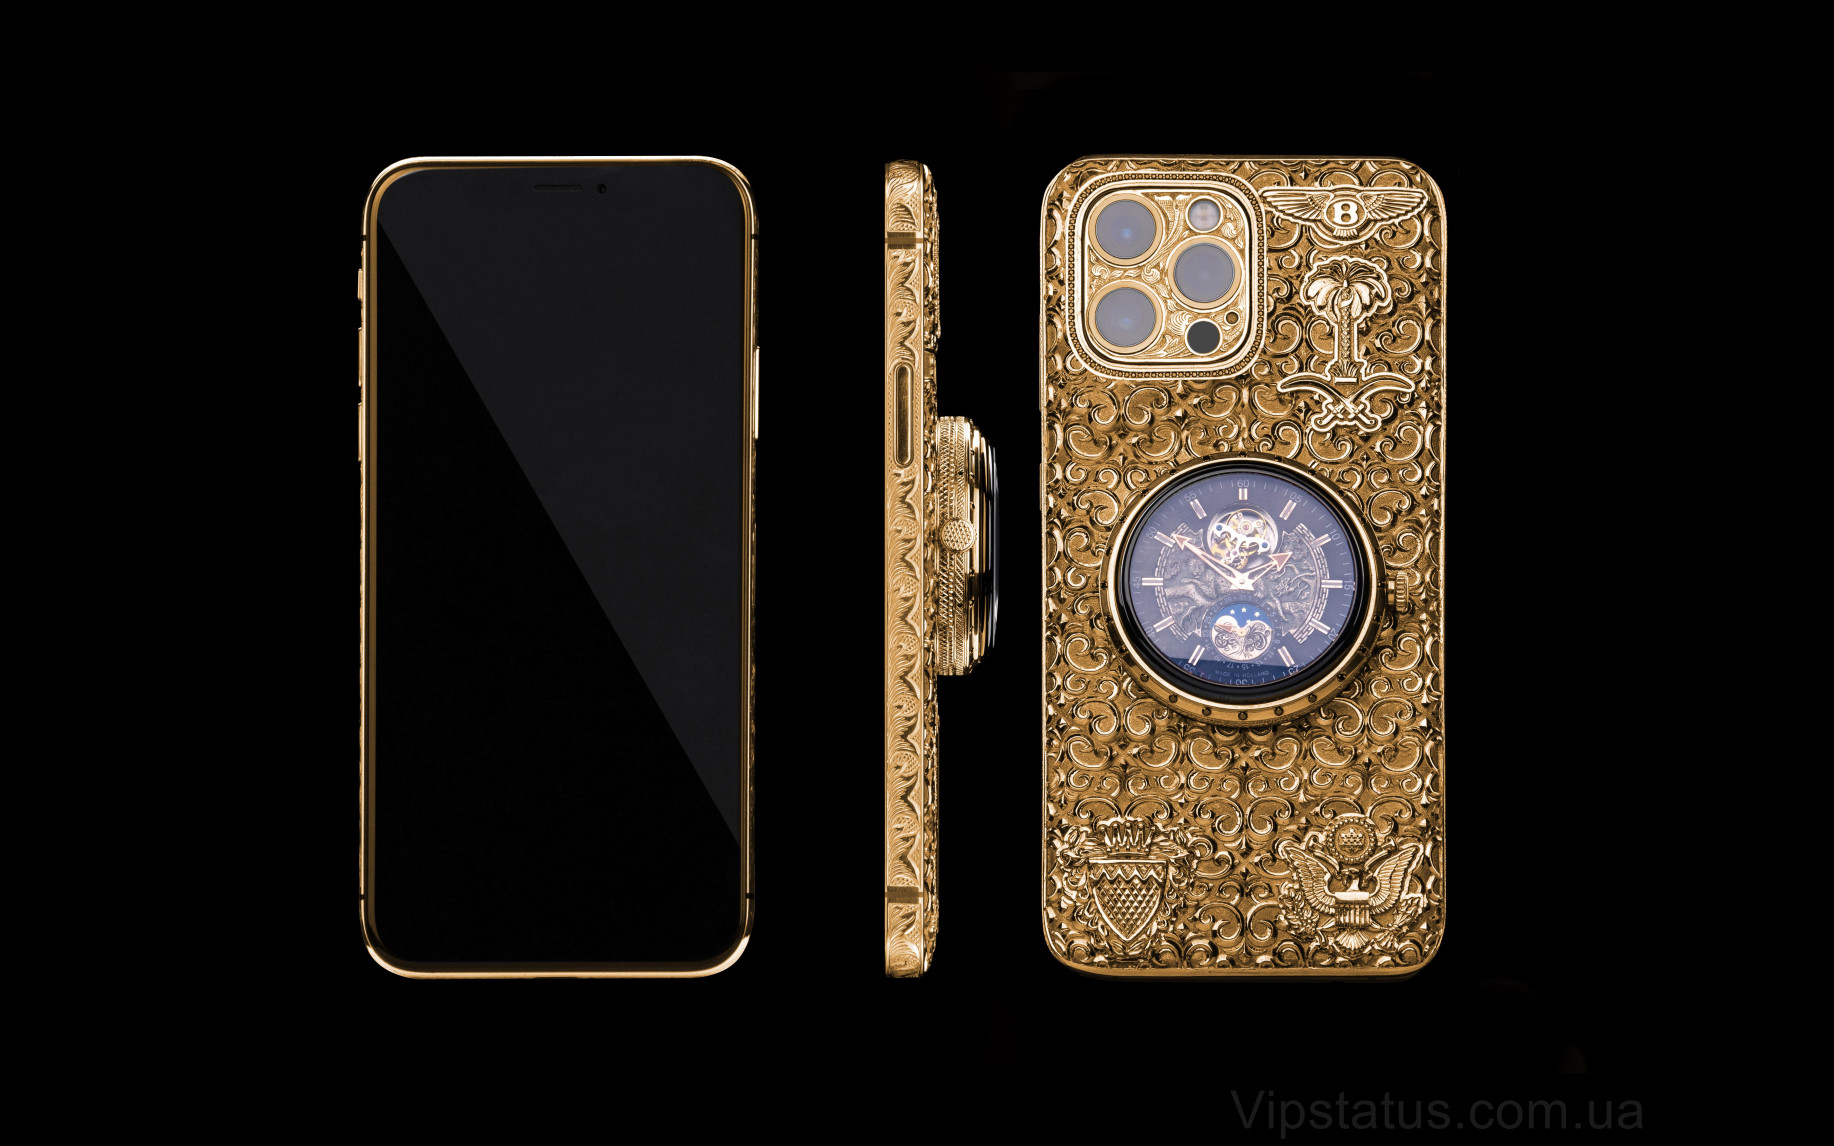 Elite Golden Ring of Time IPHONE 12 PRO MAX 512 GB Golden Ring of Time IPHONE 12 PRO MAX 512 GB image 3